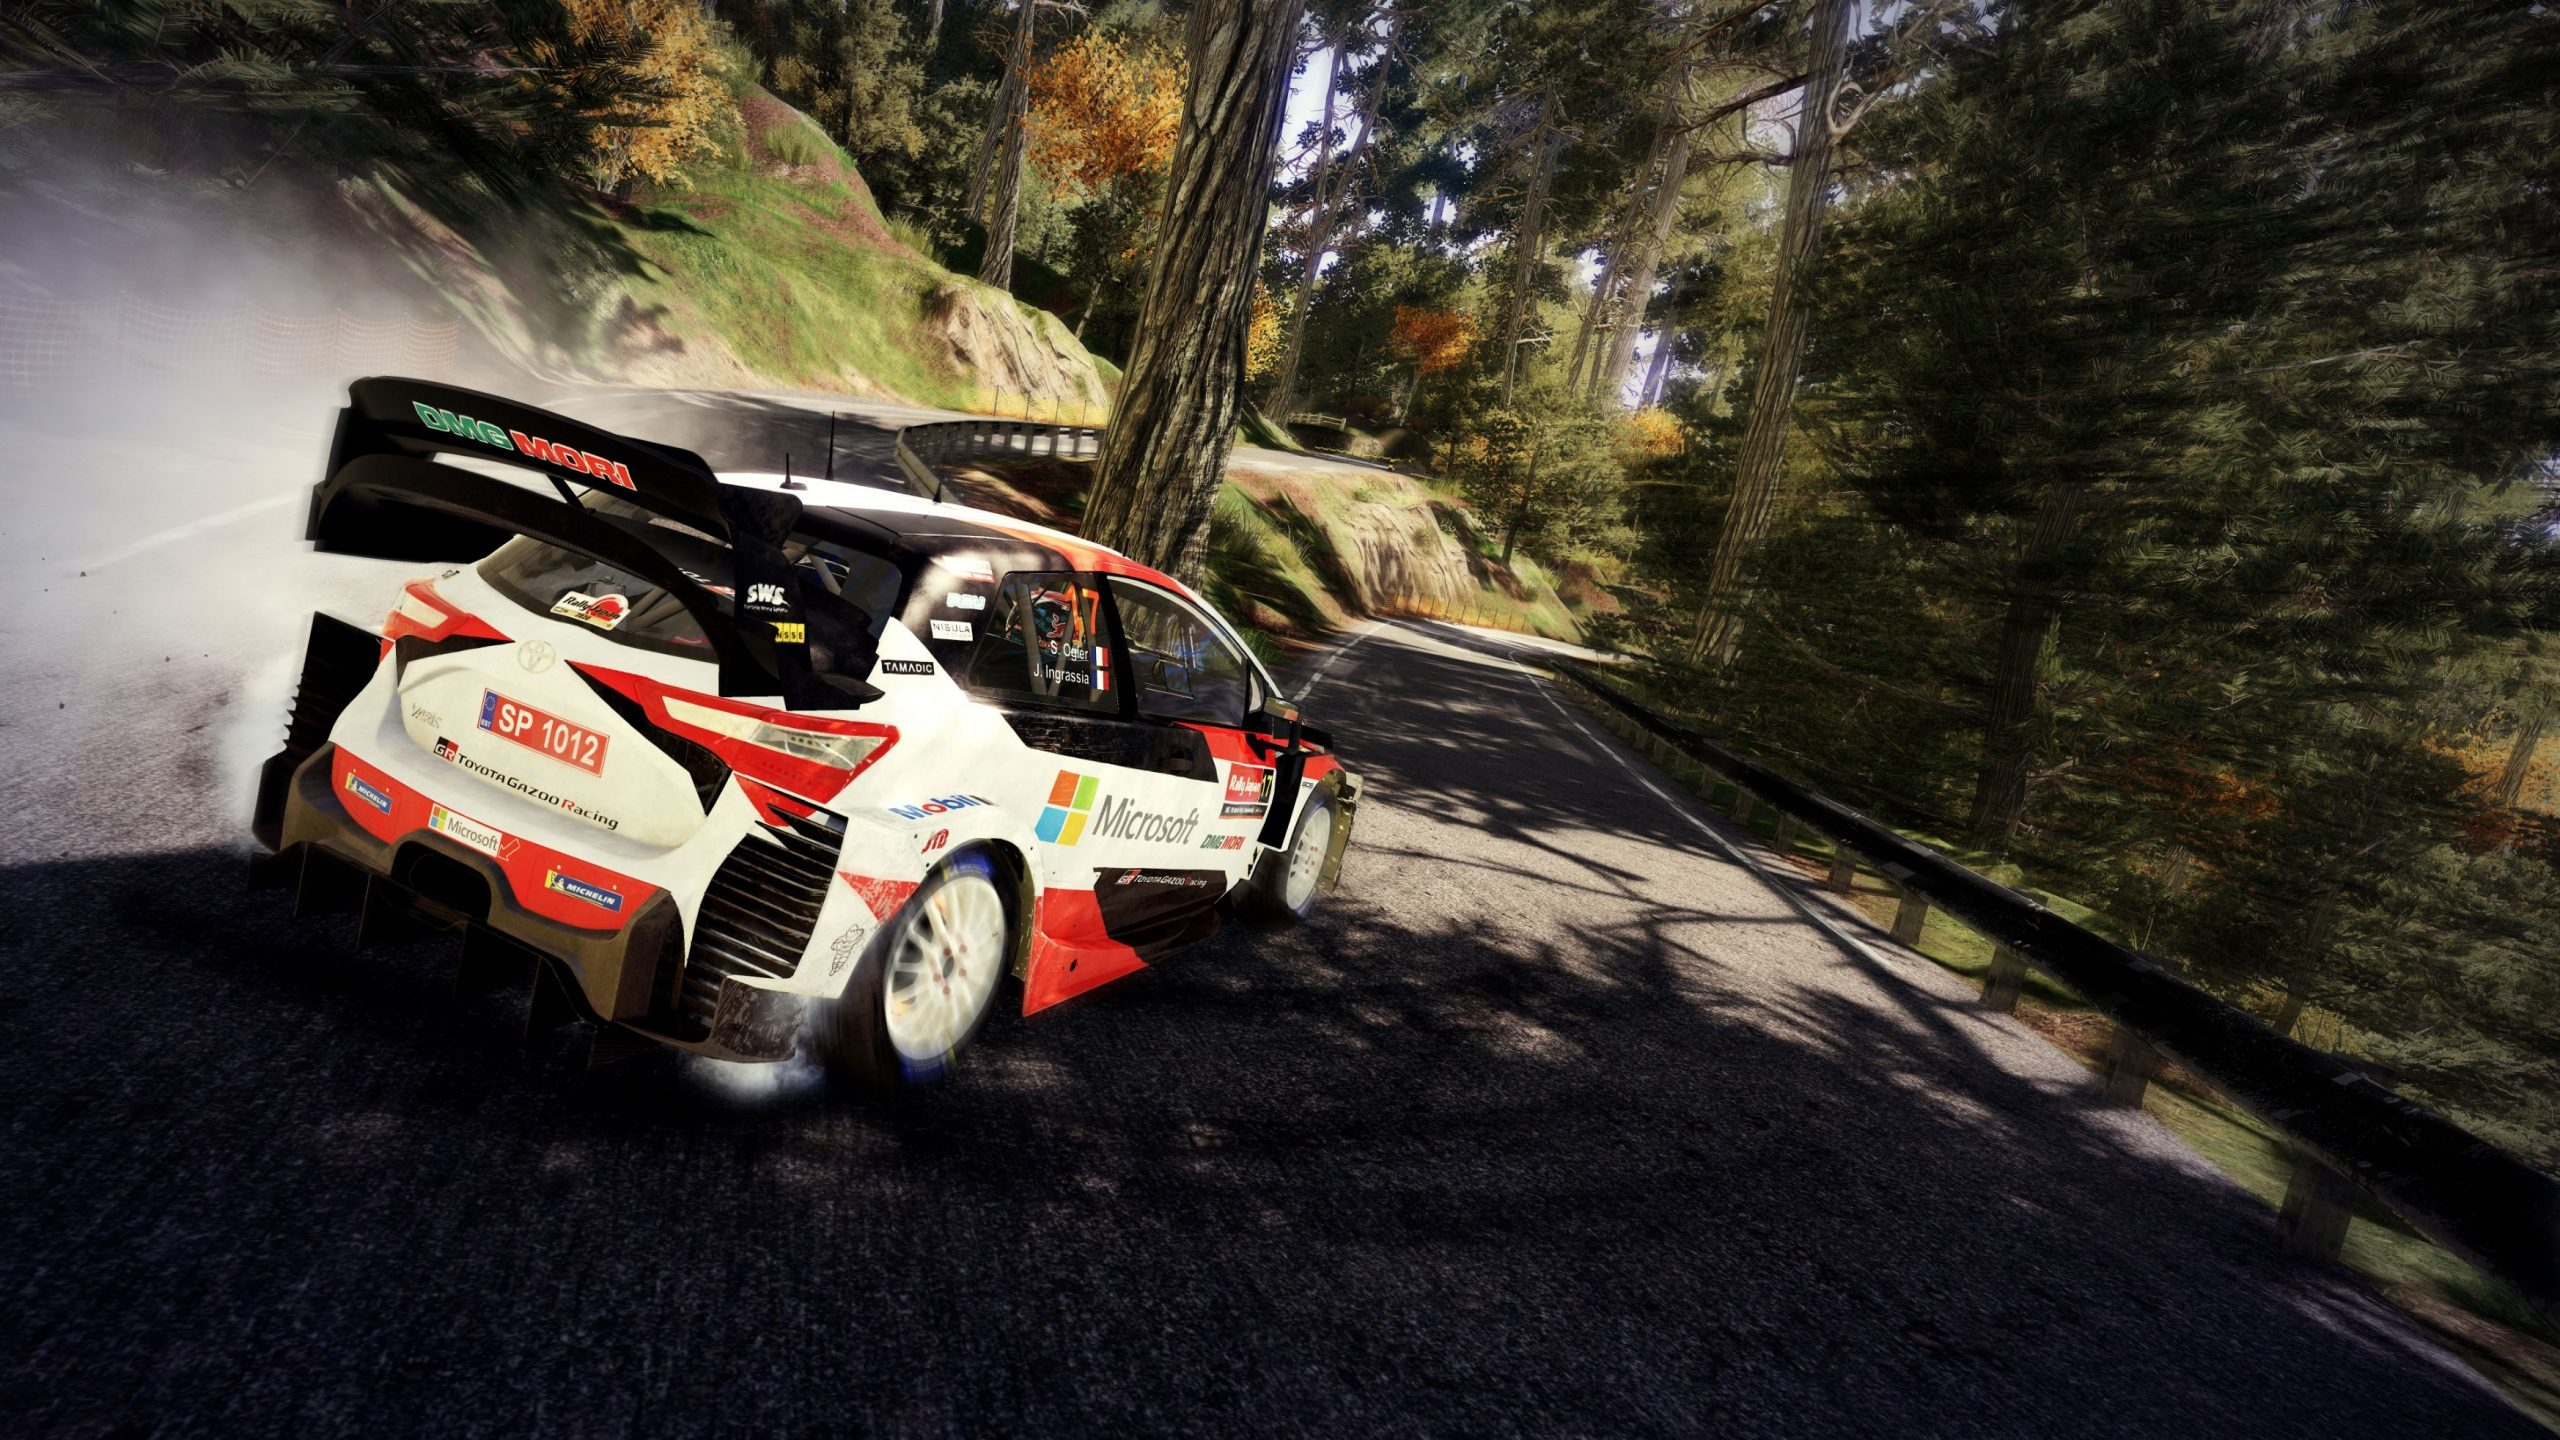 wrc 9 hd background wallpaper 72910